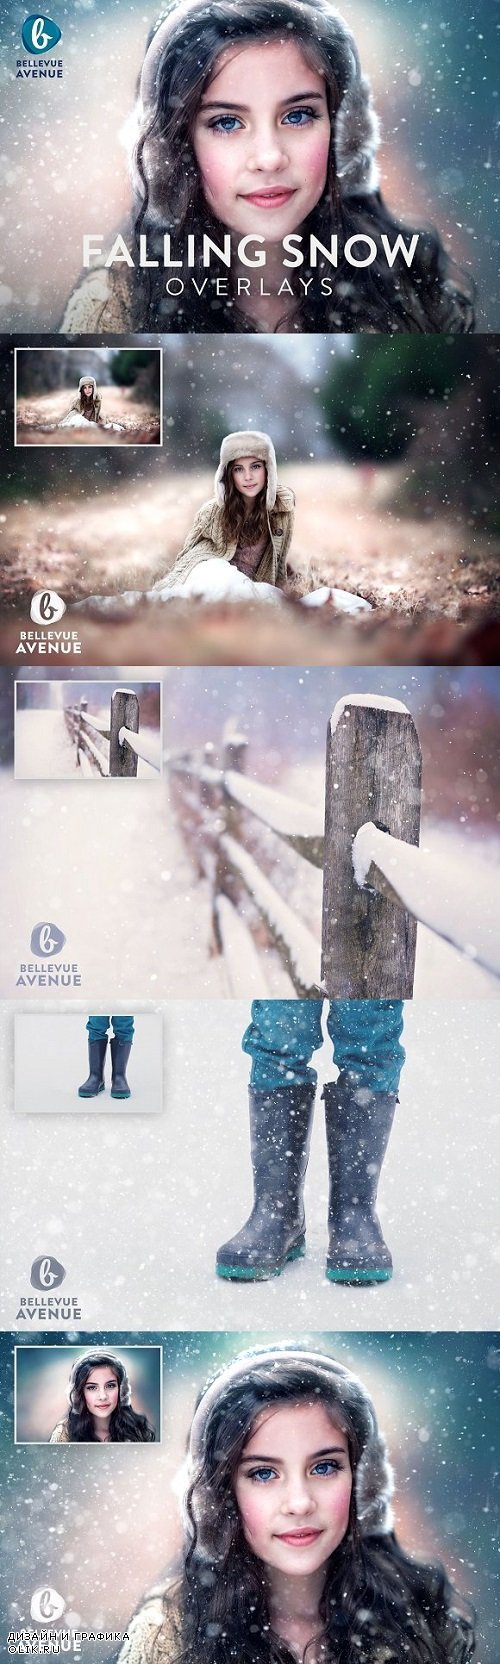 Falling Snow Overlays (Real) - 2294895